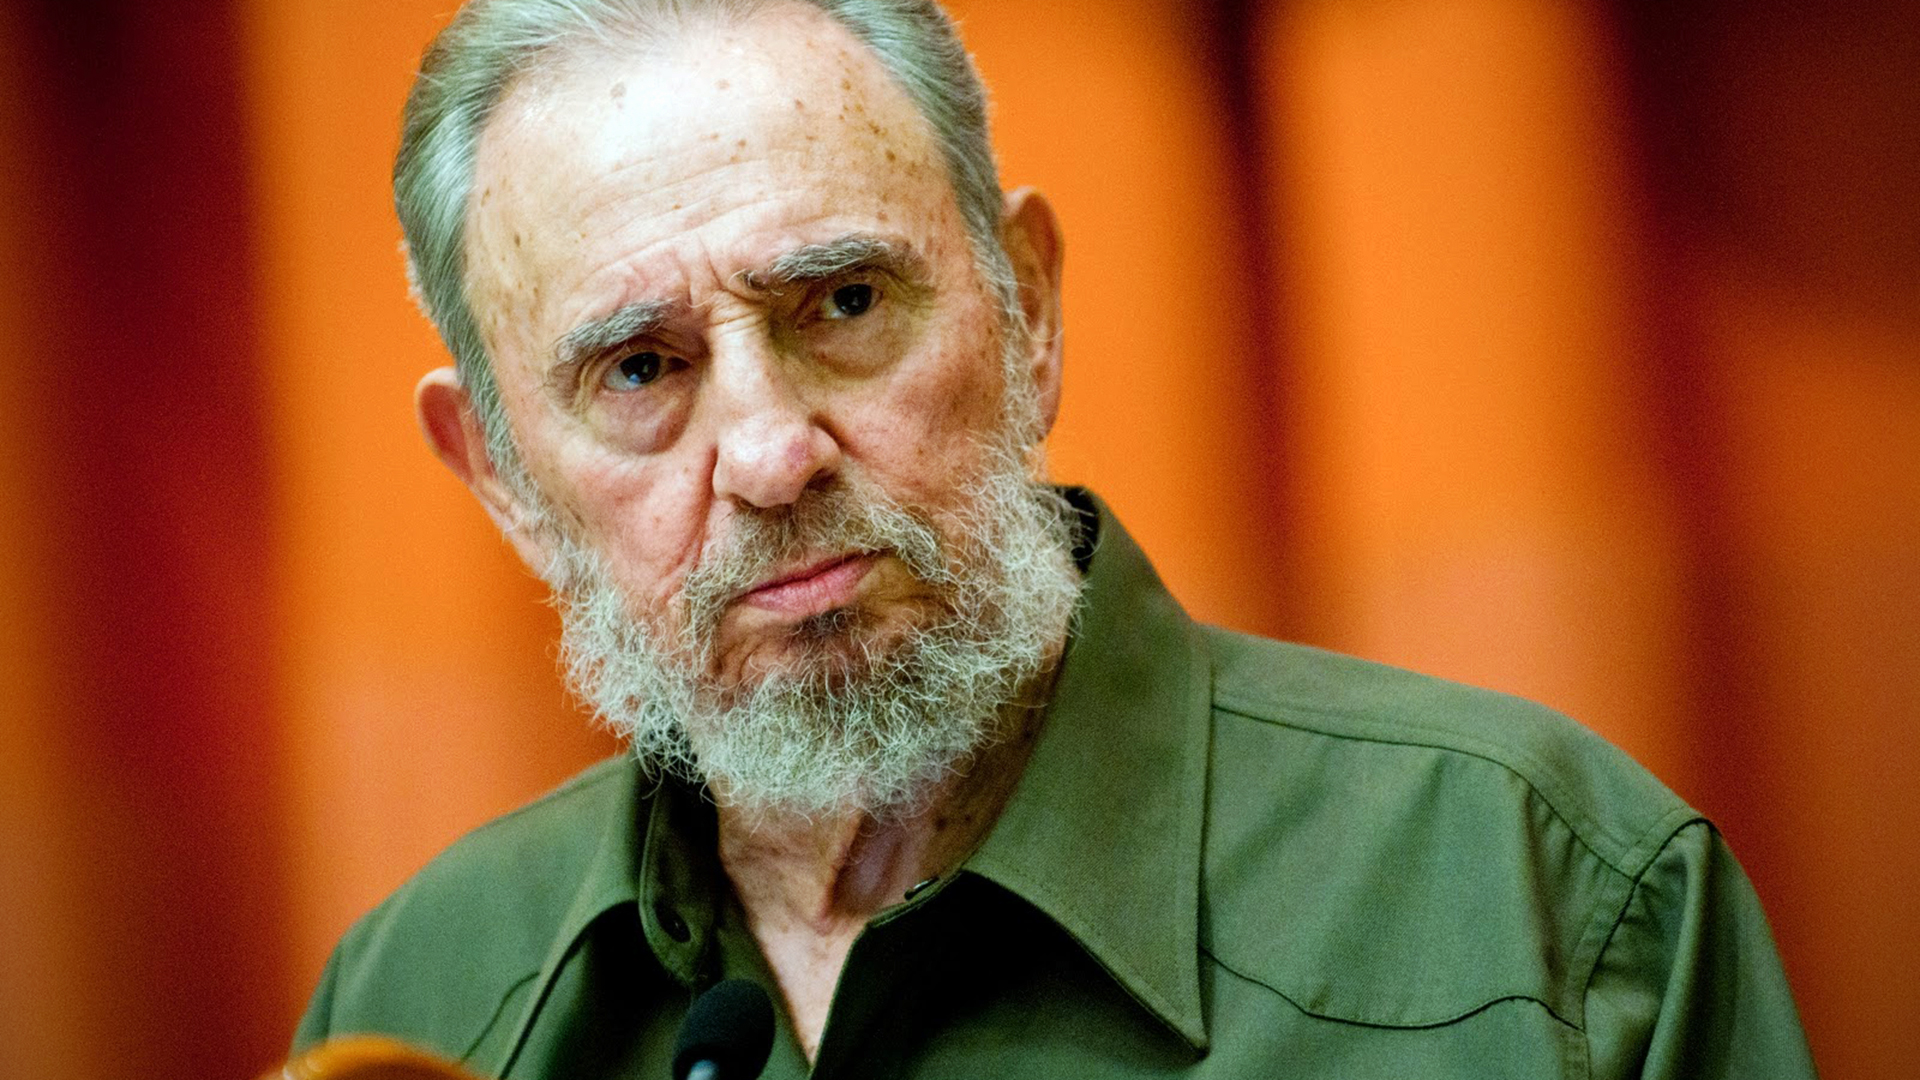 https://i1.wp.com/www.telemundo.com/sites/nbcutelemundo/files/images/article/cover/2015/01/09/fidel-castro-uniforme-editada.jpg